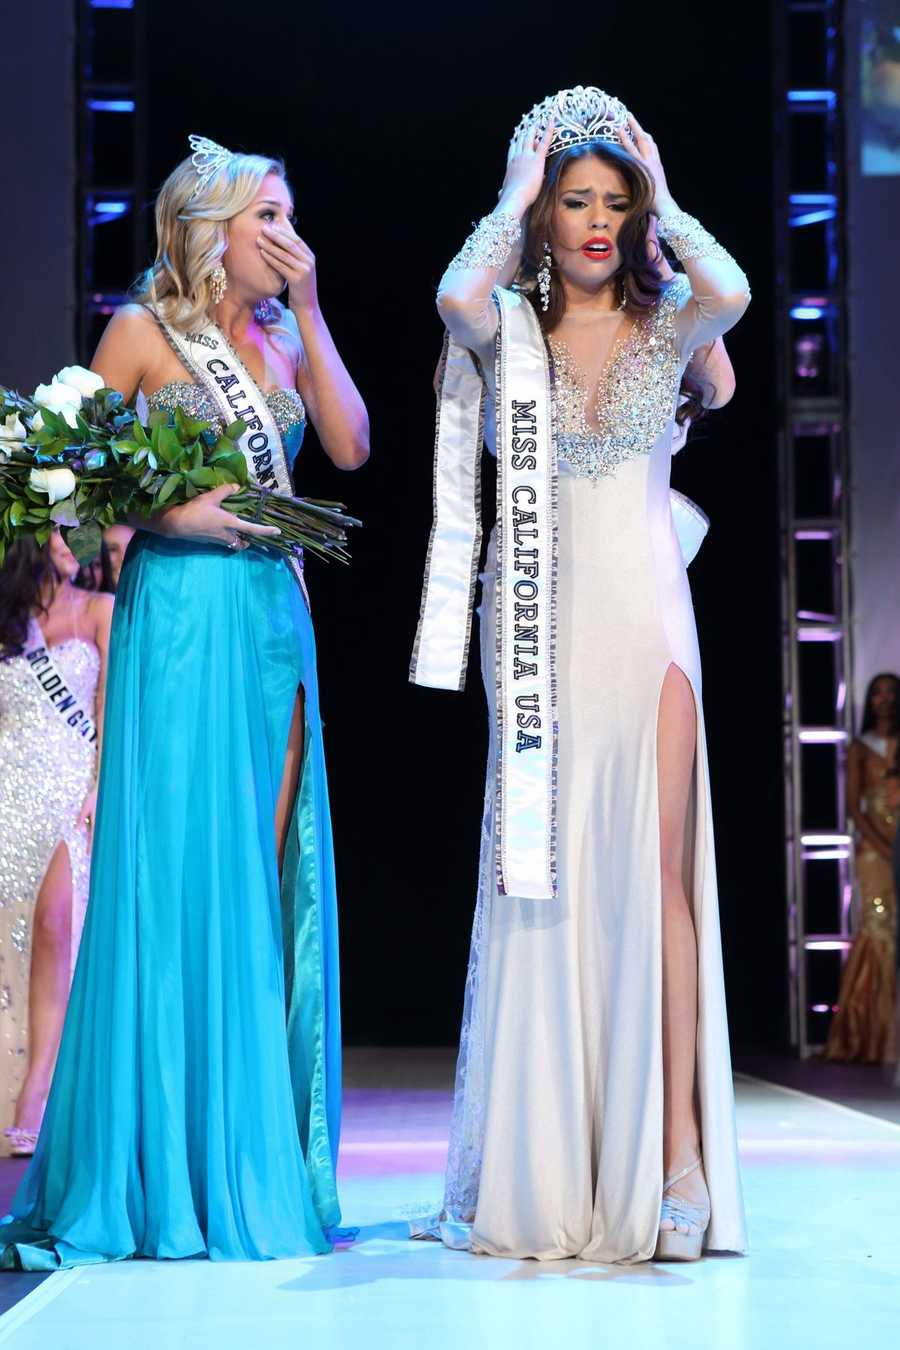 Miss Greater San Diego Mabelynn Capeluj, right, is crowned Miss California USA 2013.